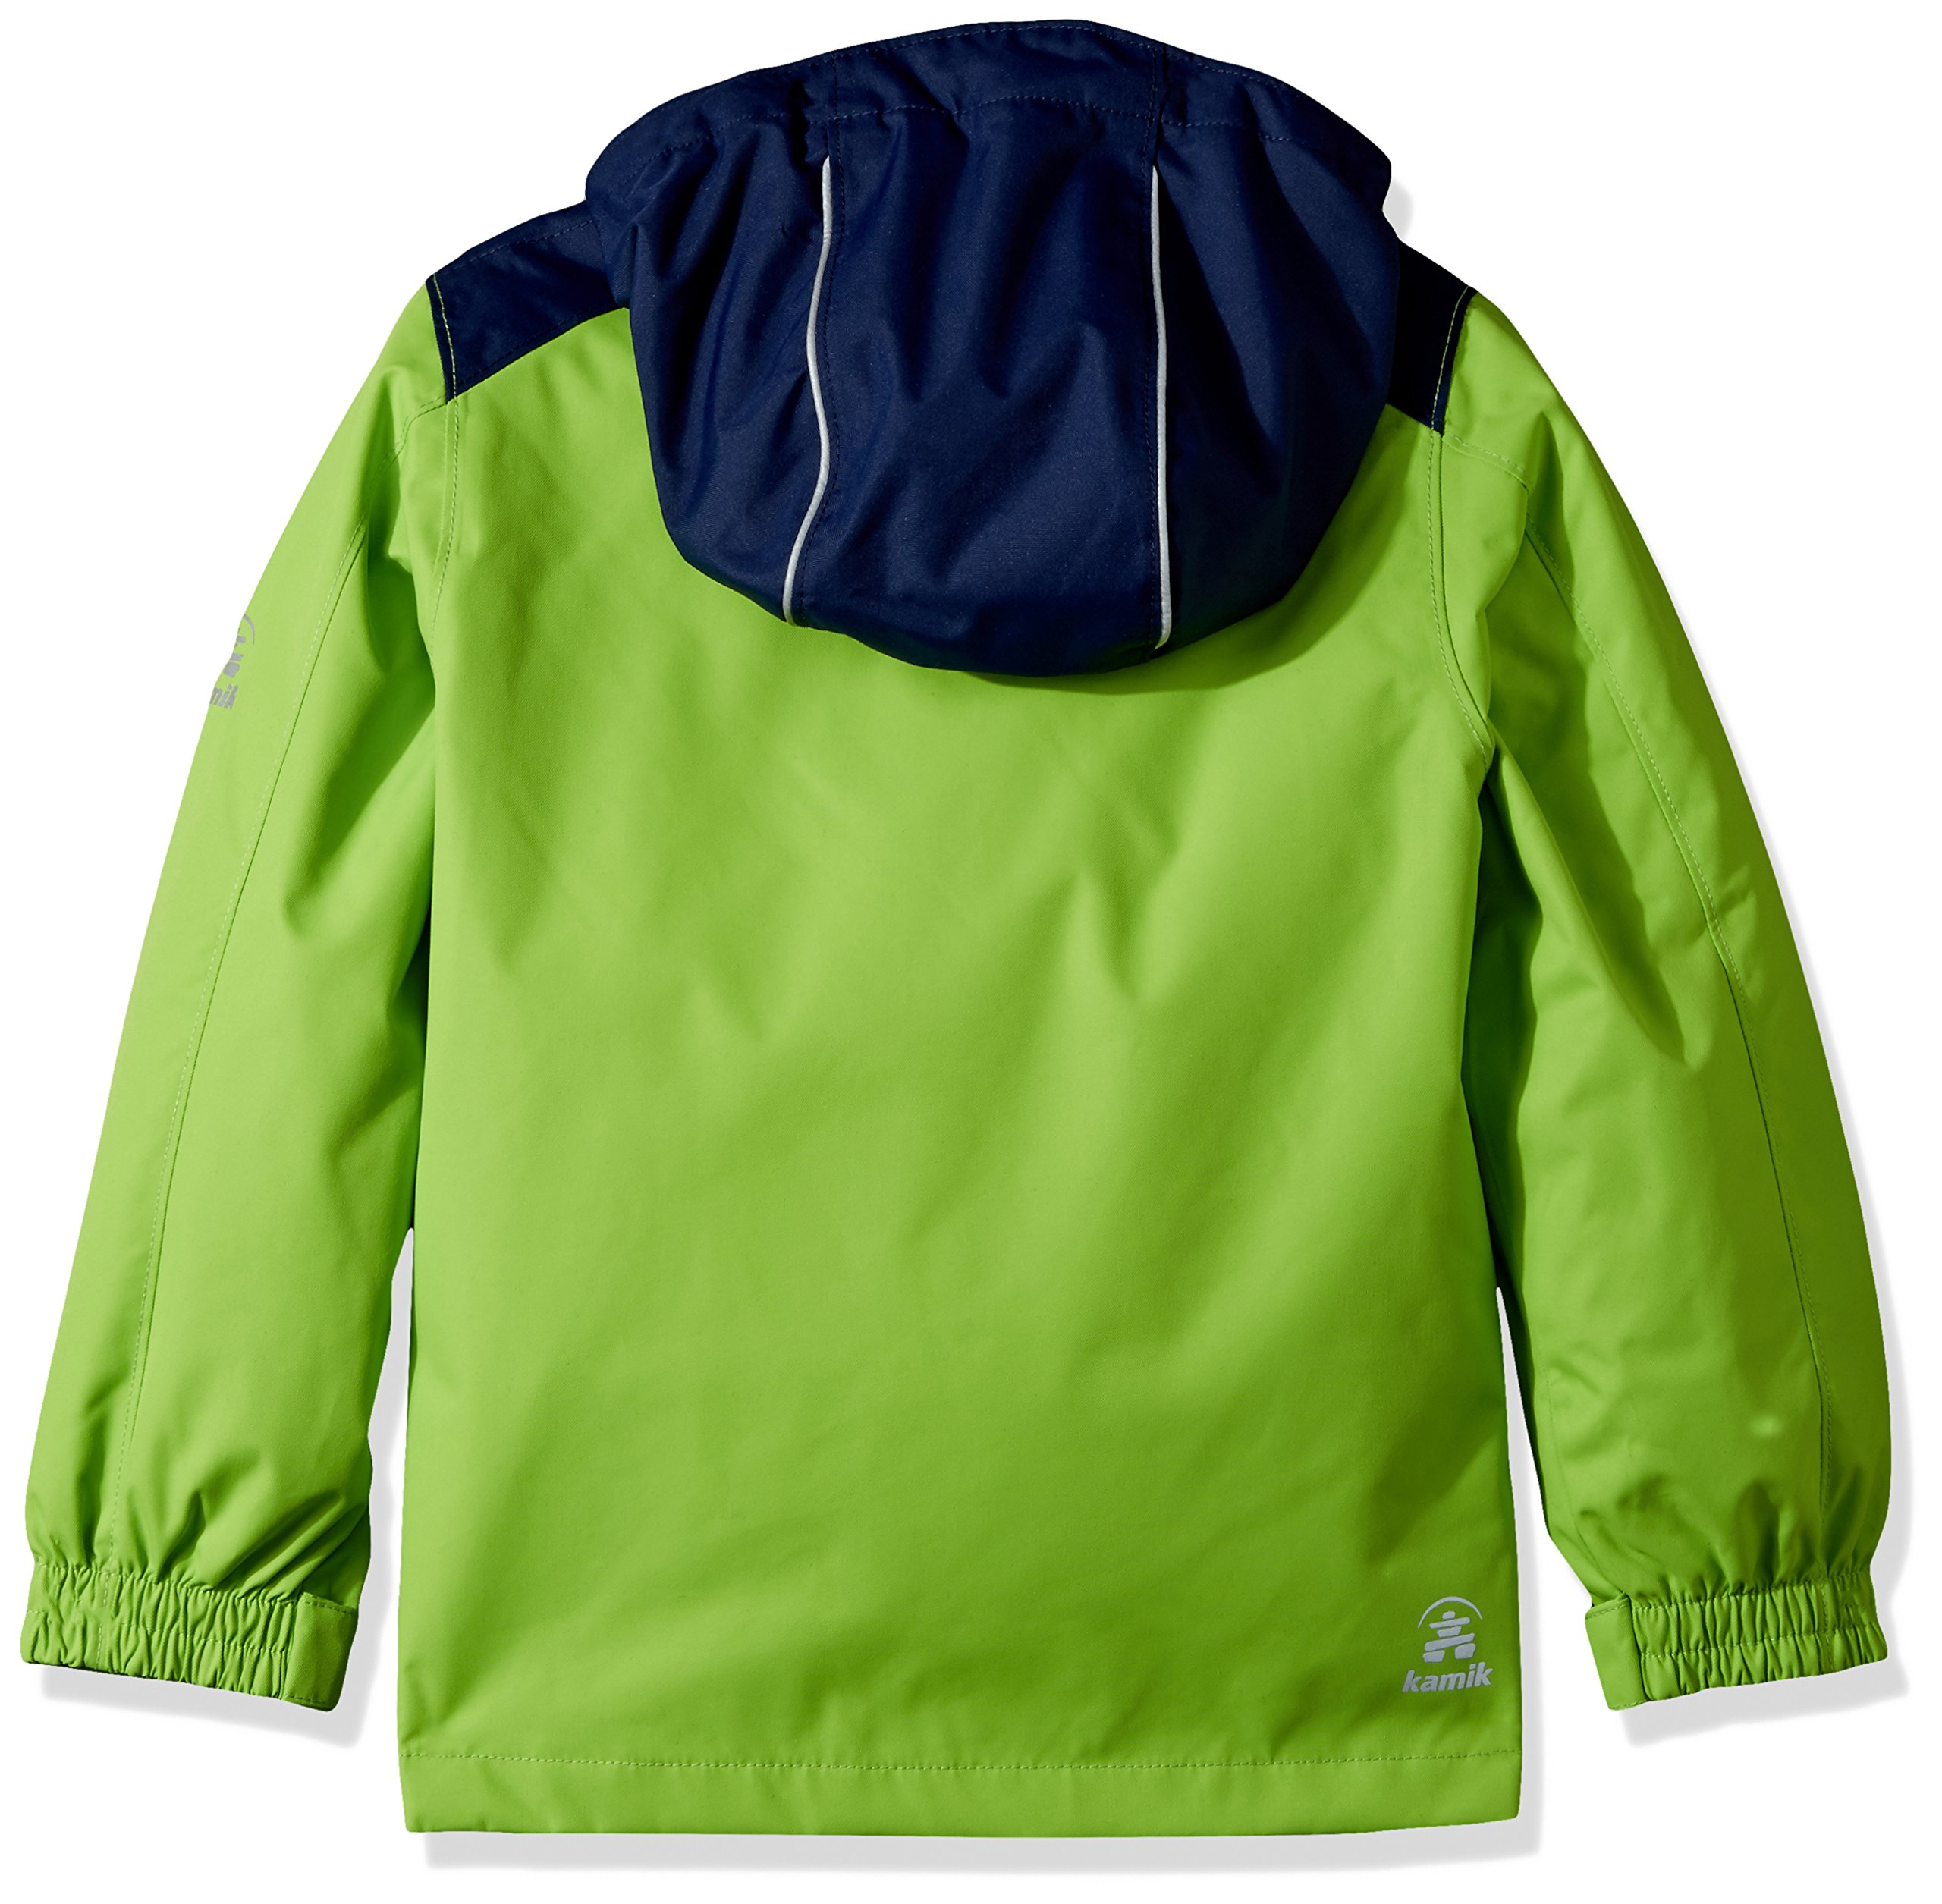 Kamik Winter Apparel Boy's Chase 3In1 Down, Gecko/Navy, 3 by Kamik Winter Apparel (Image #2)